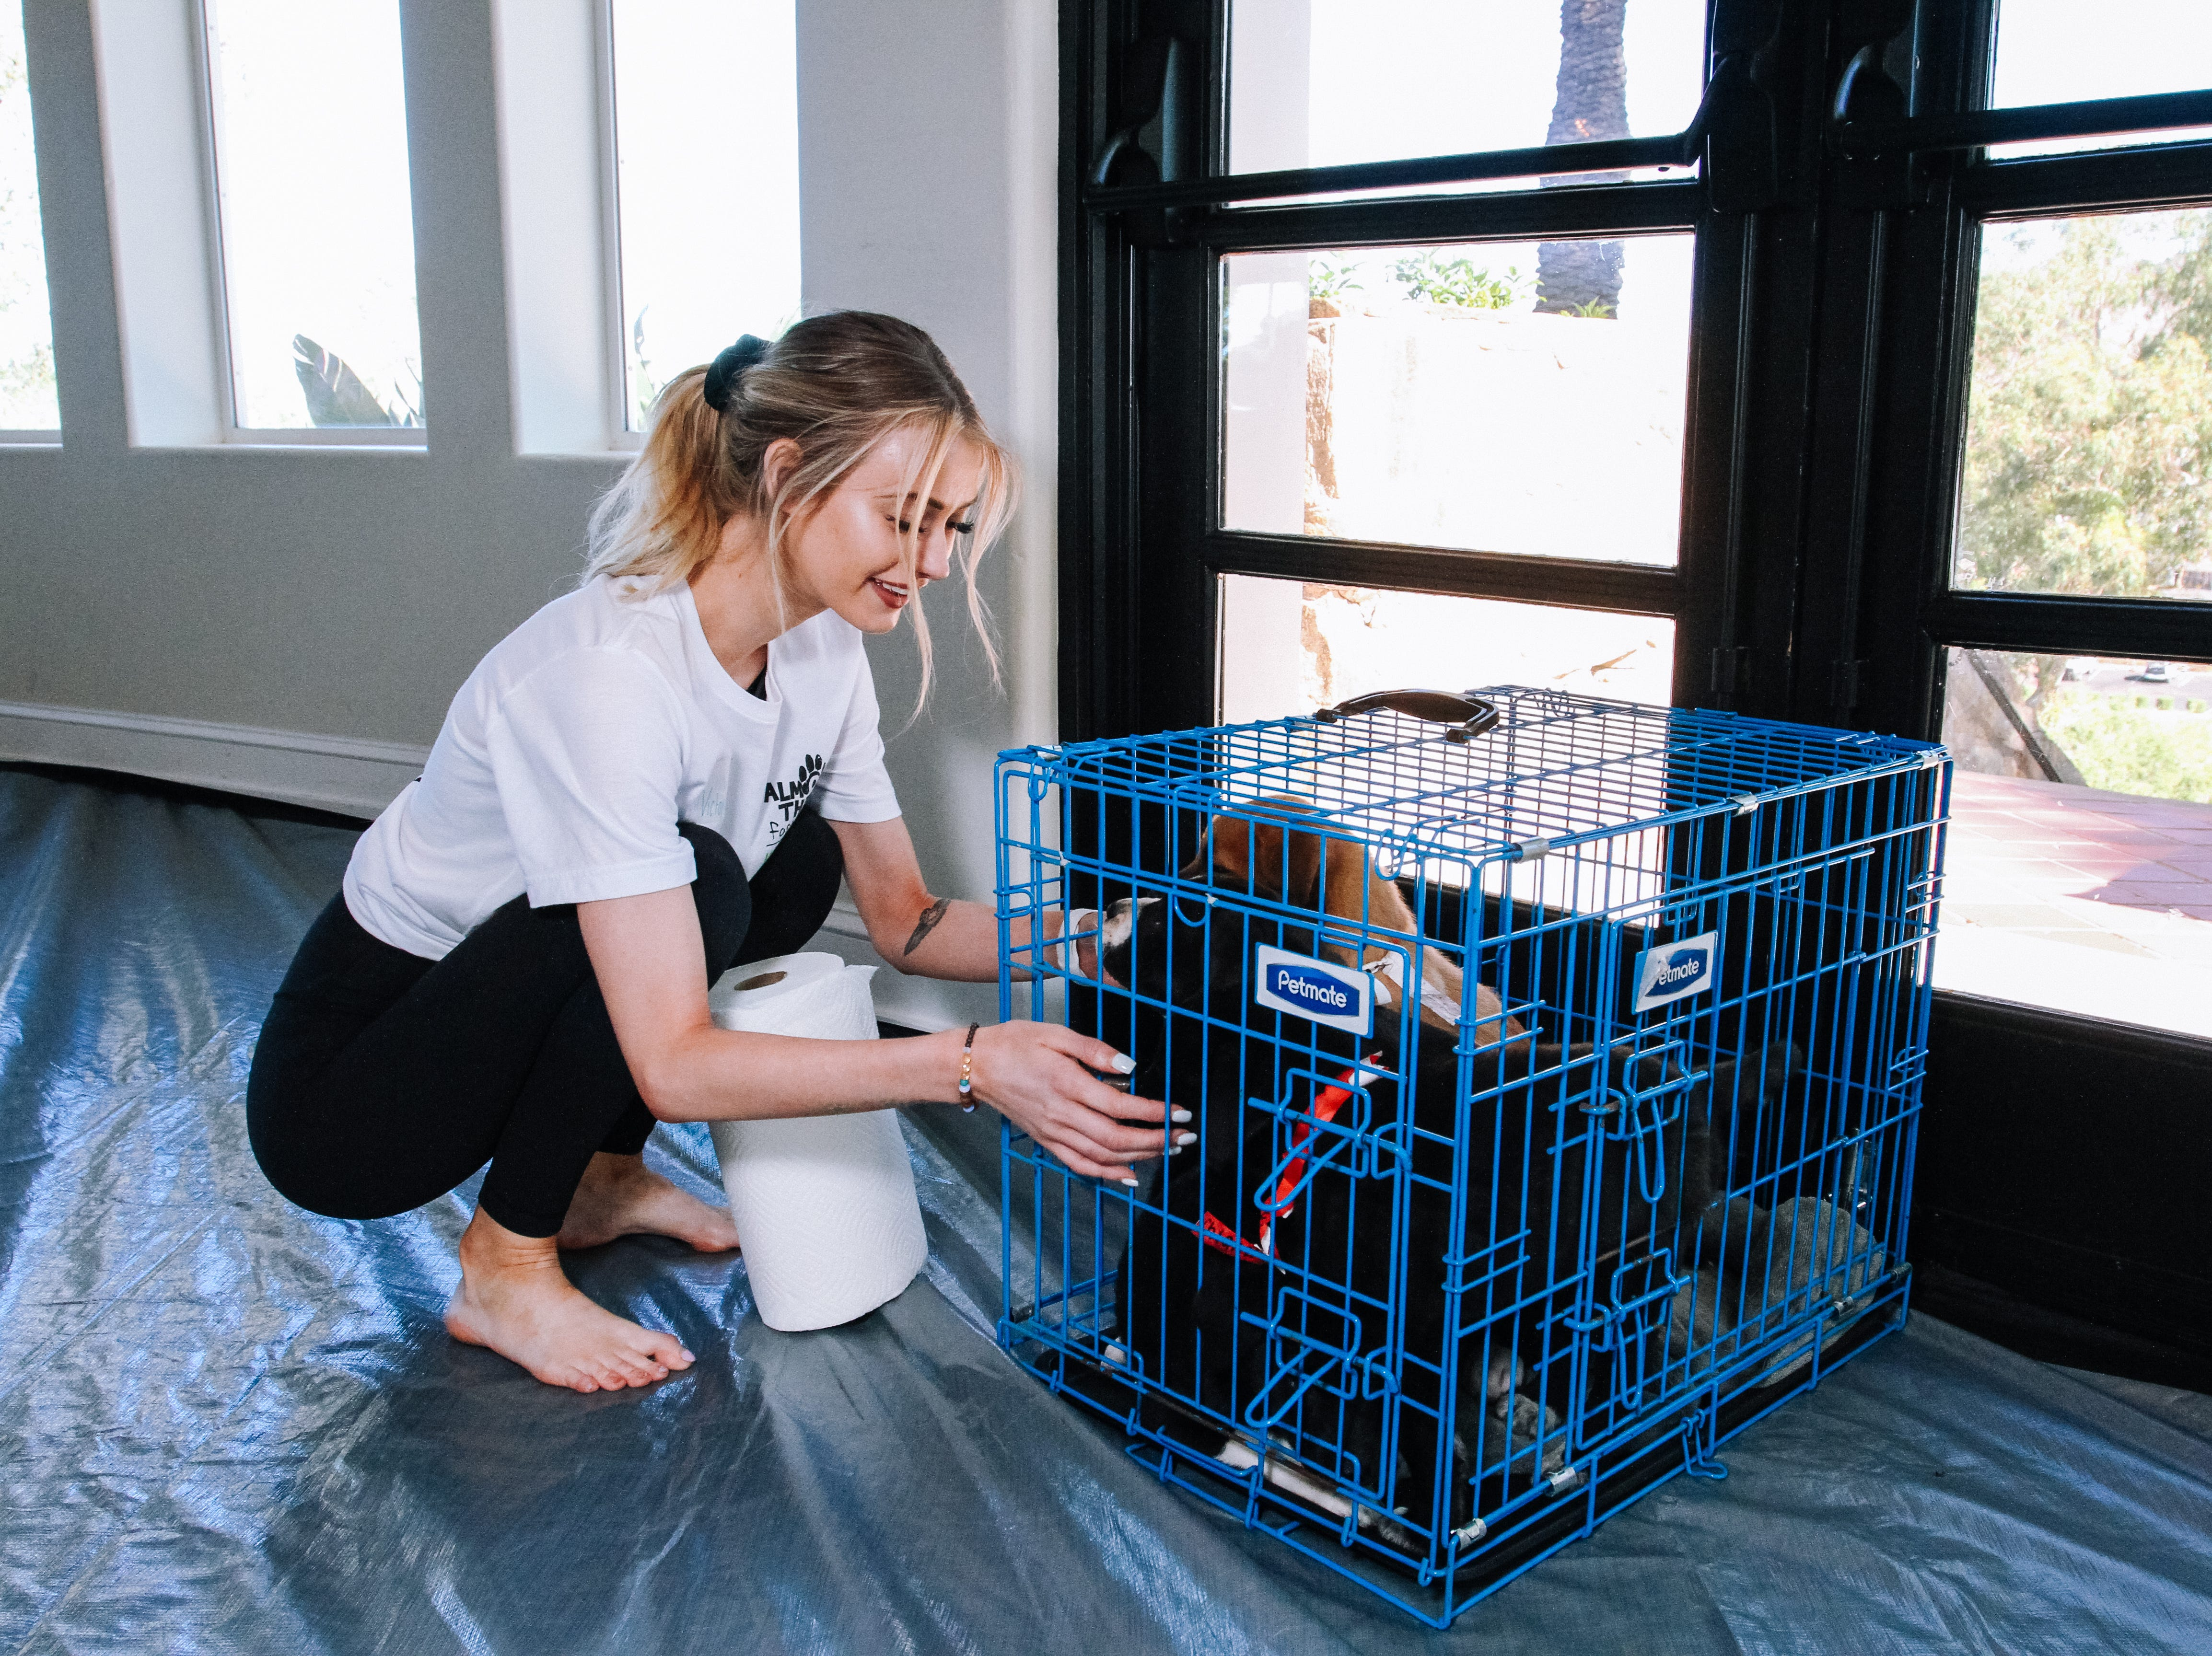 Victoria Eccles, a volunteer with Almost There Foster Care, puts puppies in their kennel at Puppies, Pilates and Prosecco, an event hosted by Almost There Foster Care at the Wrigley Mansion in Phoenix on April 13, 2019.